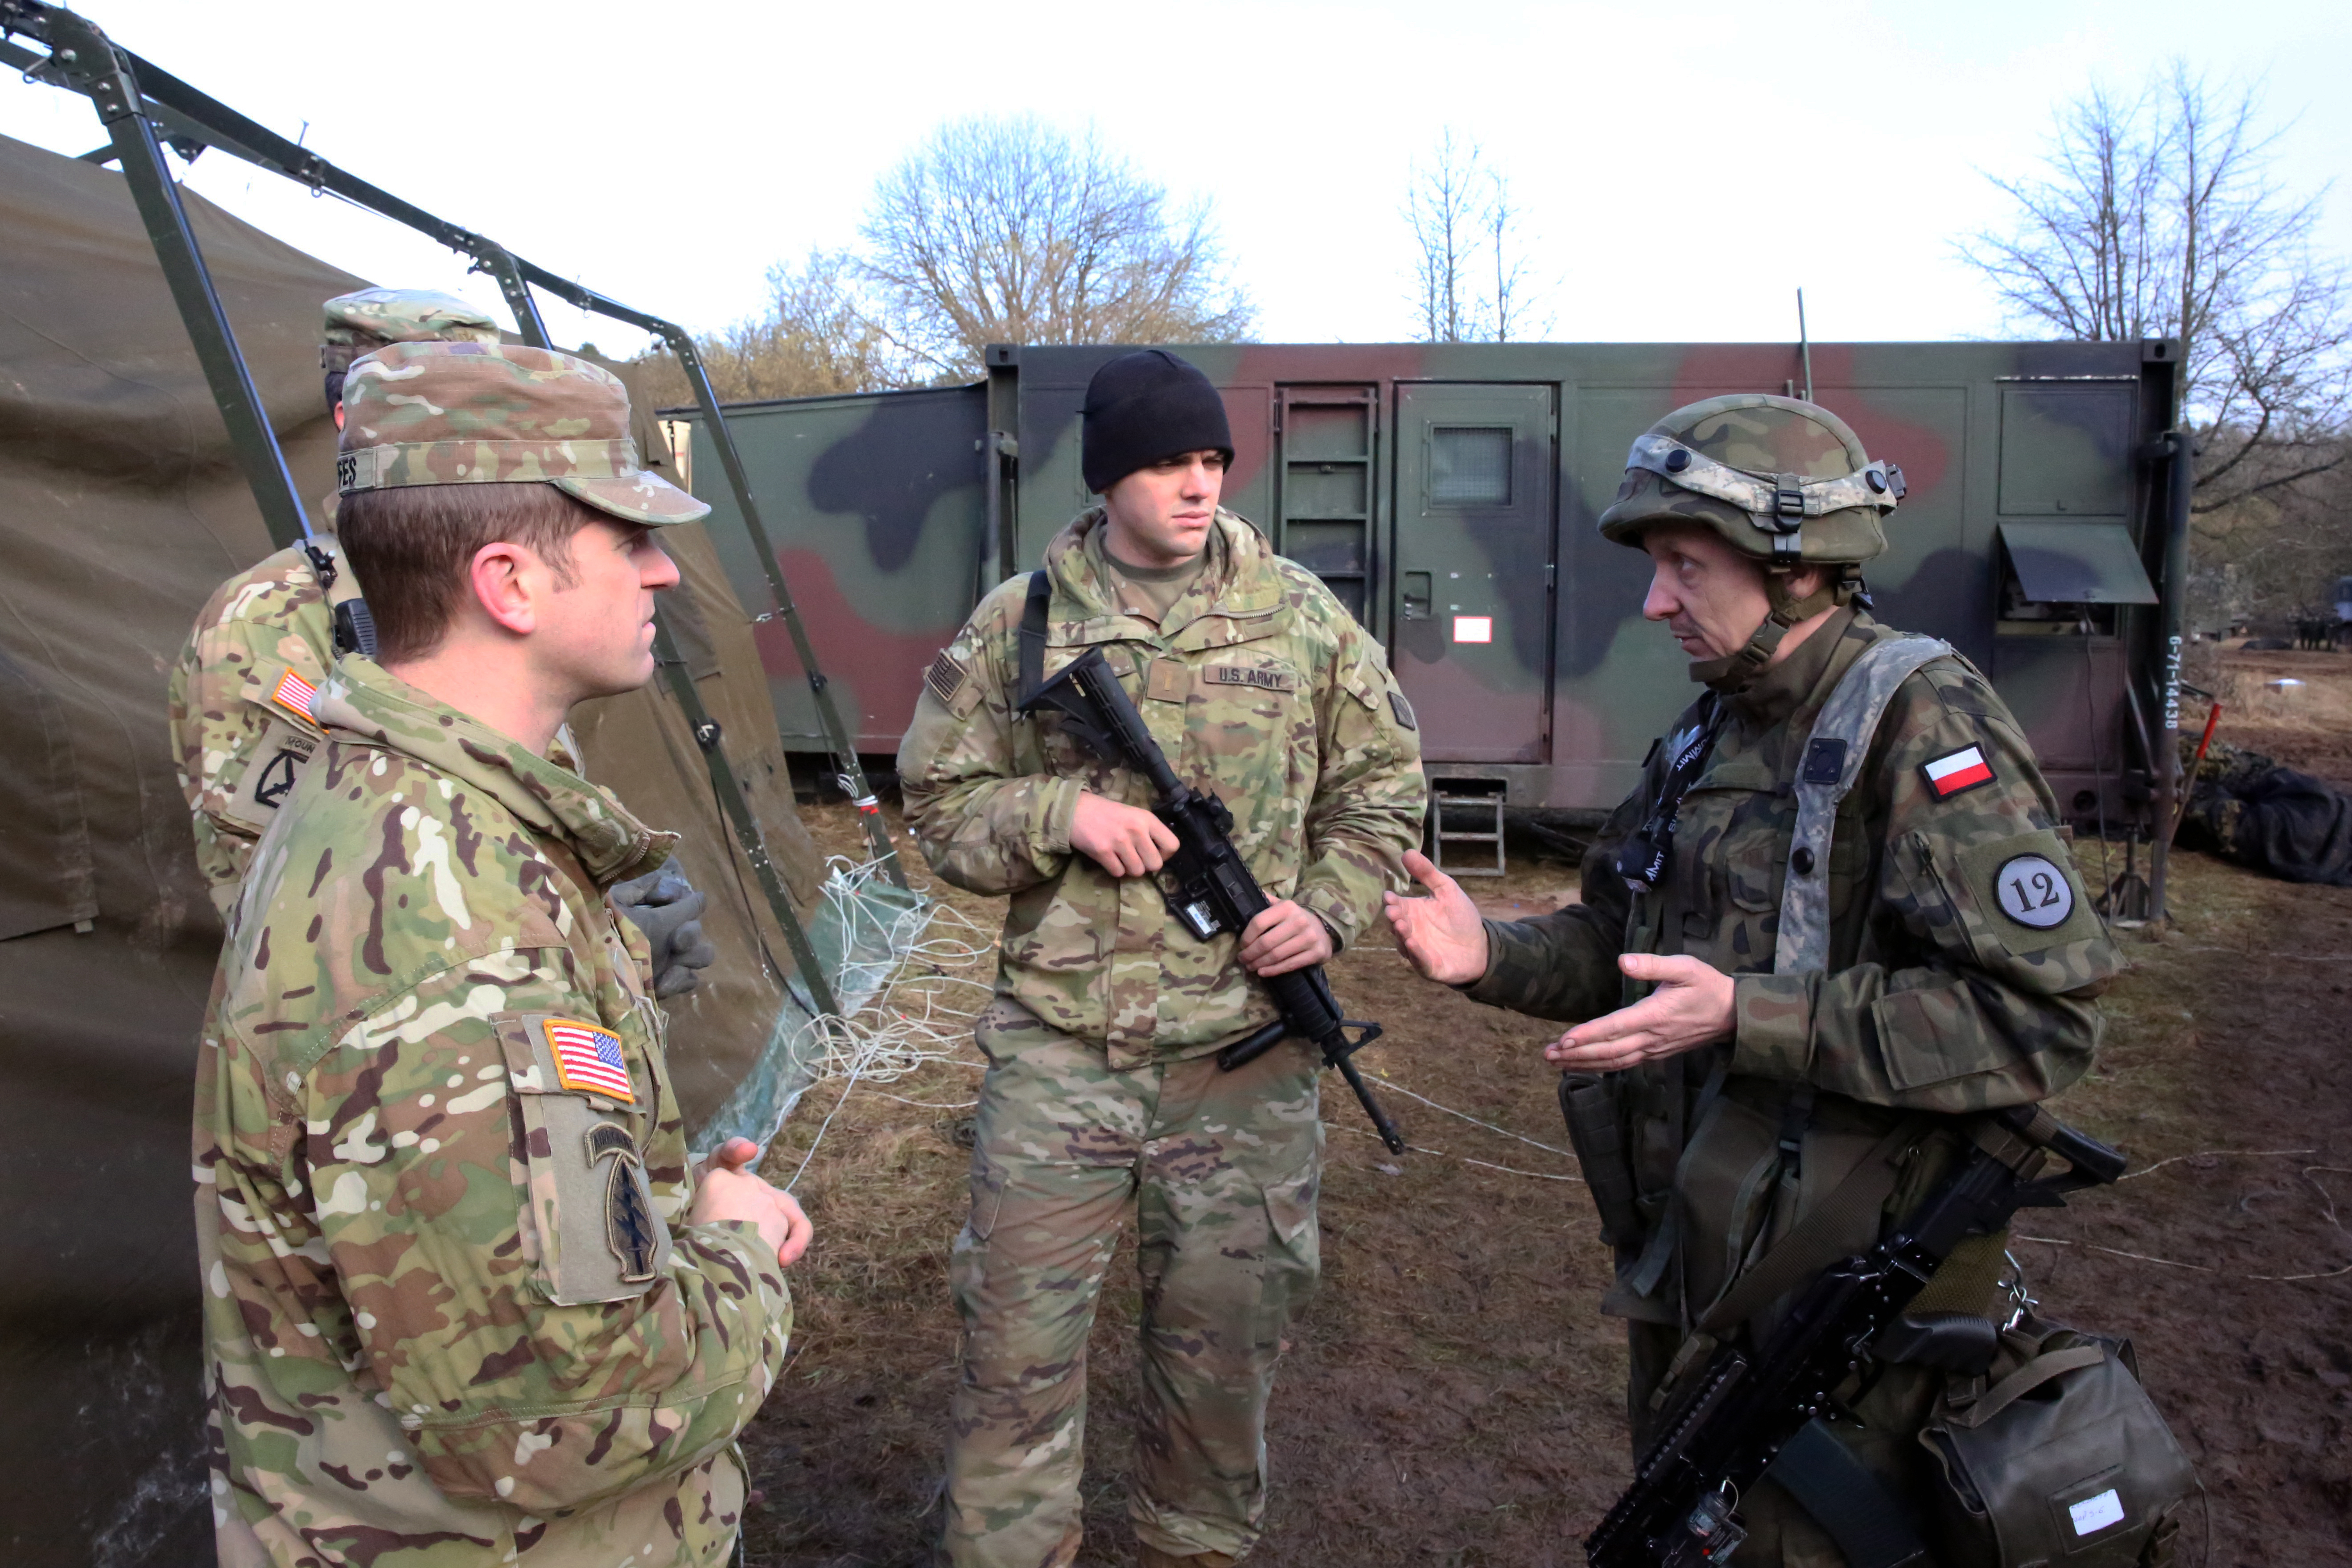 U.S. Army Capt. James Griffes (left), commander of Charlie Company, 44th Expeditionary Signal Battalion, 2nd Theater Signal Brigade, and platoon leader 2nd Lt. Justin Hortin speak with Maj. Tomsz Koczalski, the S-6 Communications and Information Management officer assigned to Poland's 12th Mechanized Brigade, during exercise Allied Spirit VIII, Jan. 31, 2018 in the Hohenfels Training Area, Germany. (U.S. Army photo by William B. King)